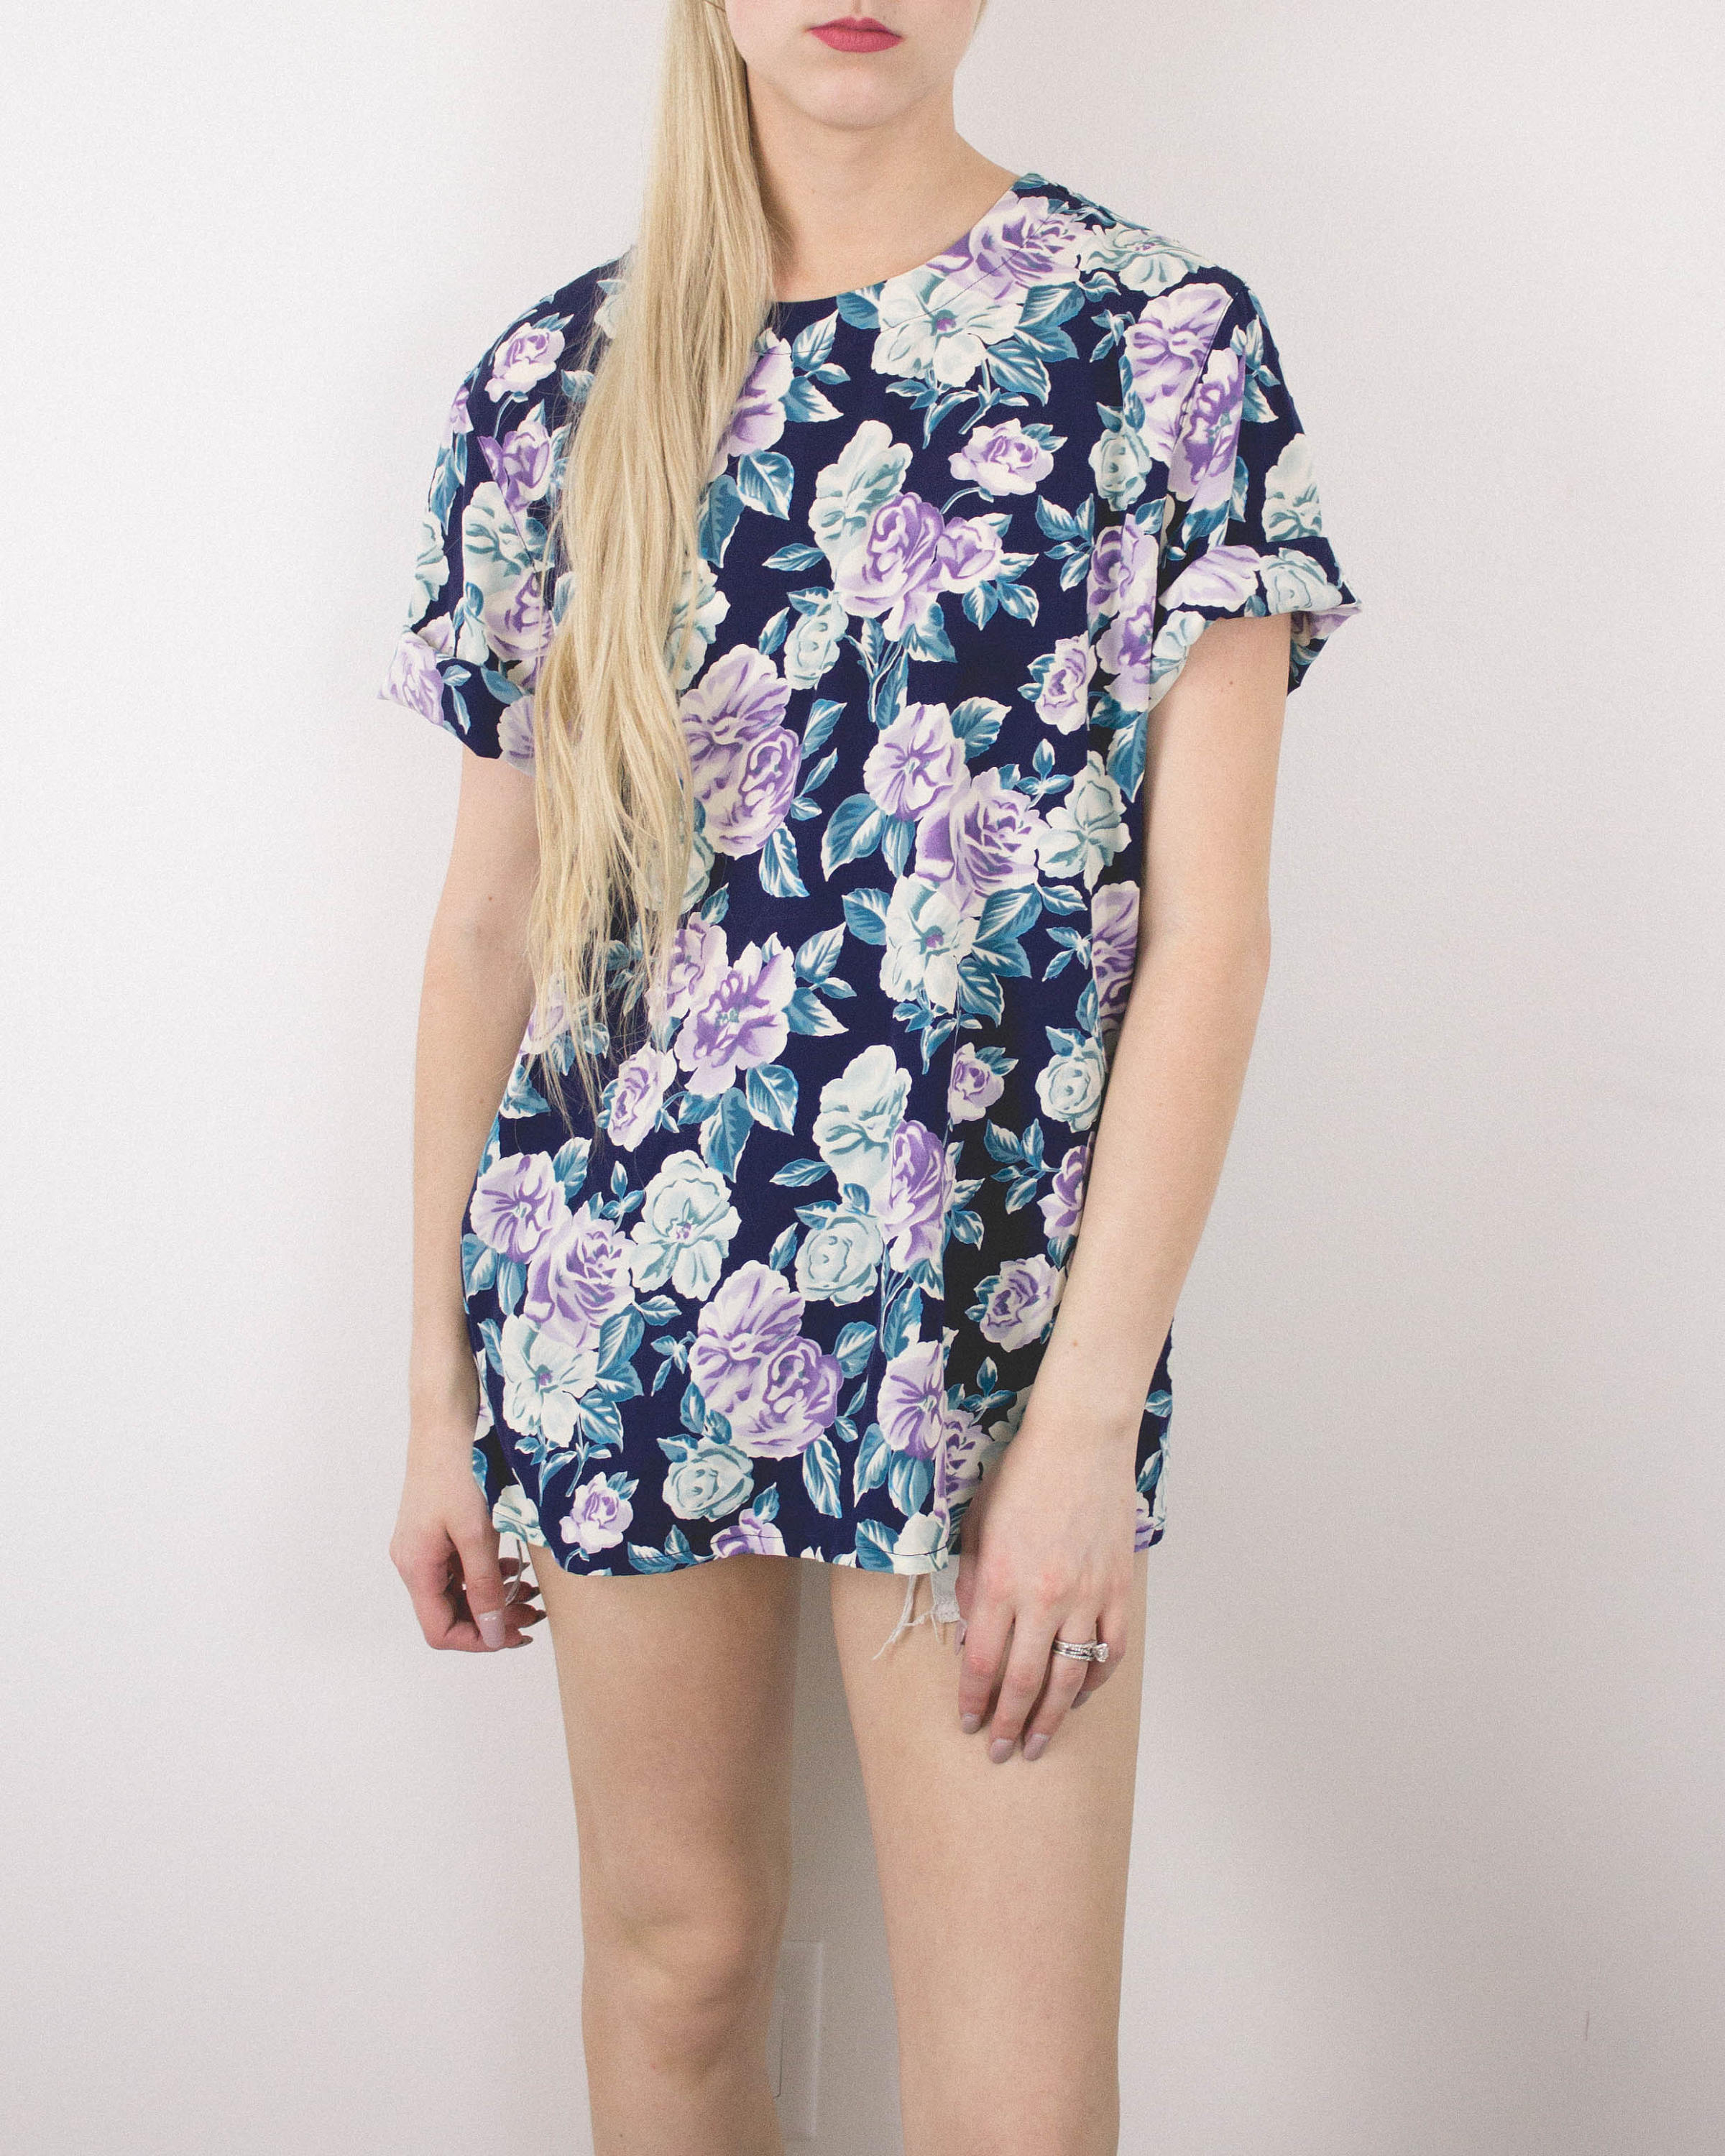 Vintage Navy And Lavender Floral Blouse